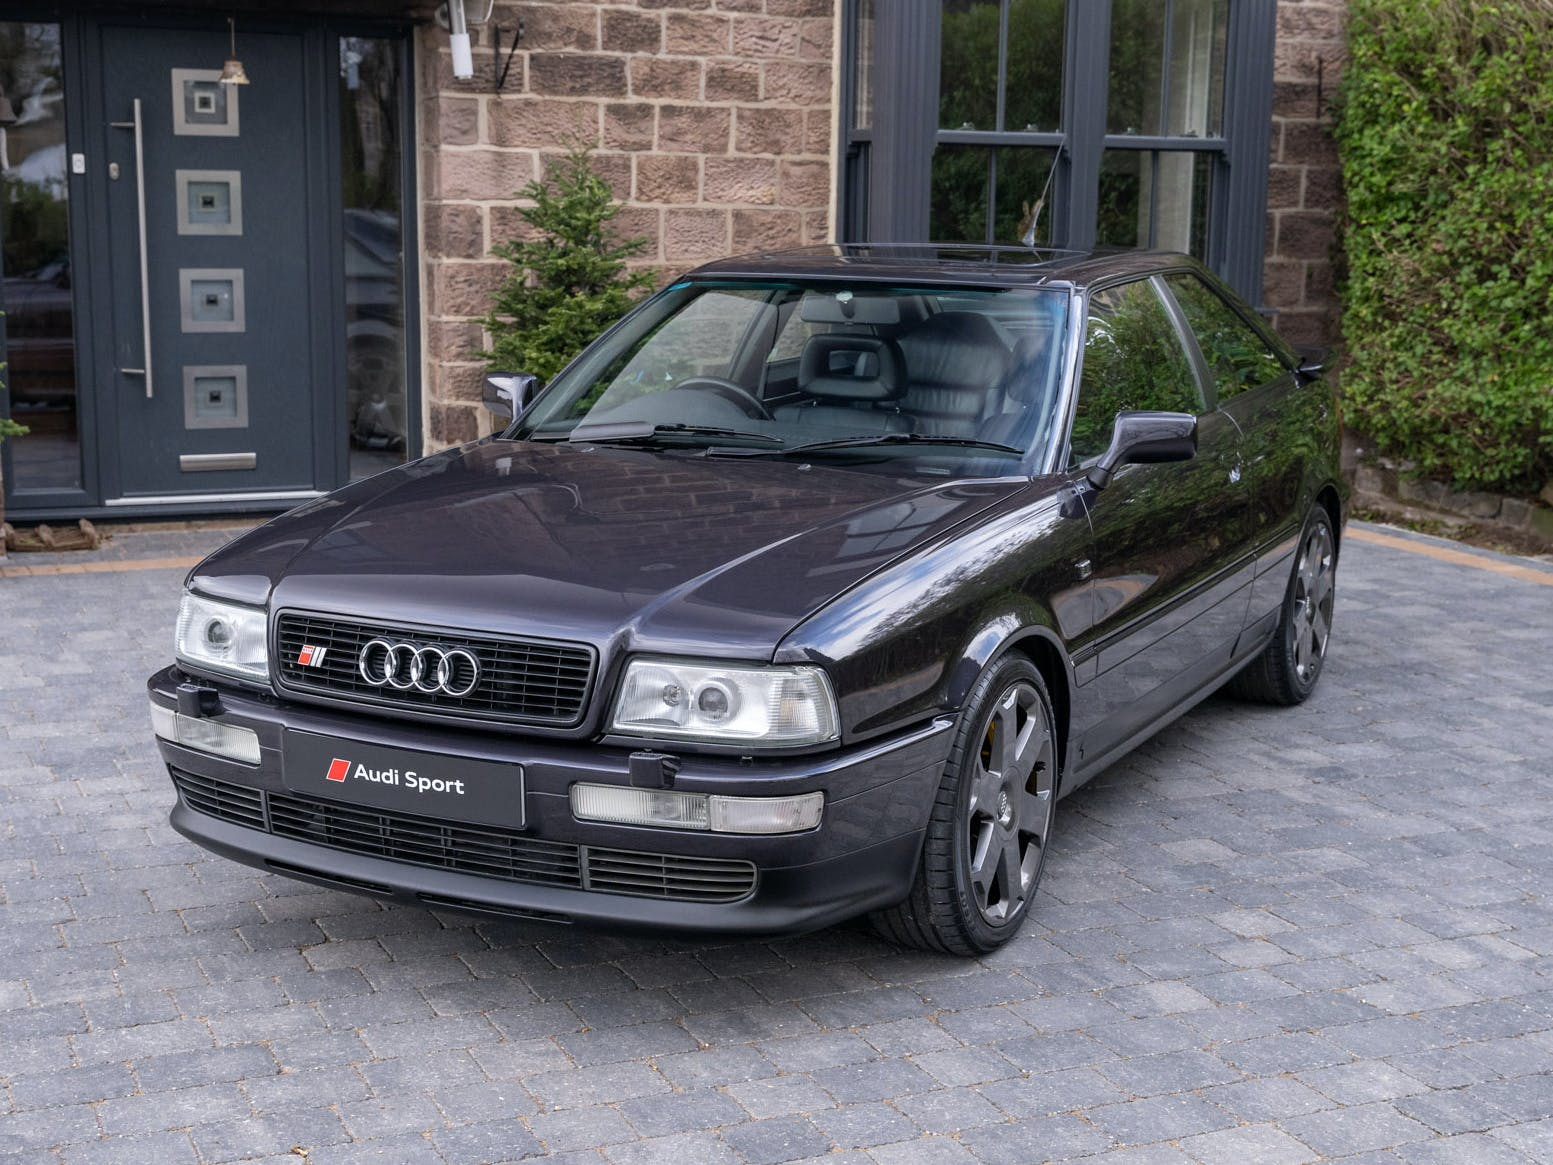 1995 Audi S2 Coupe